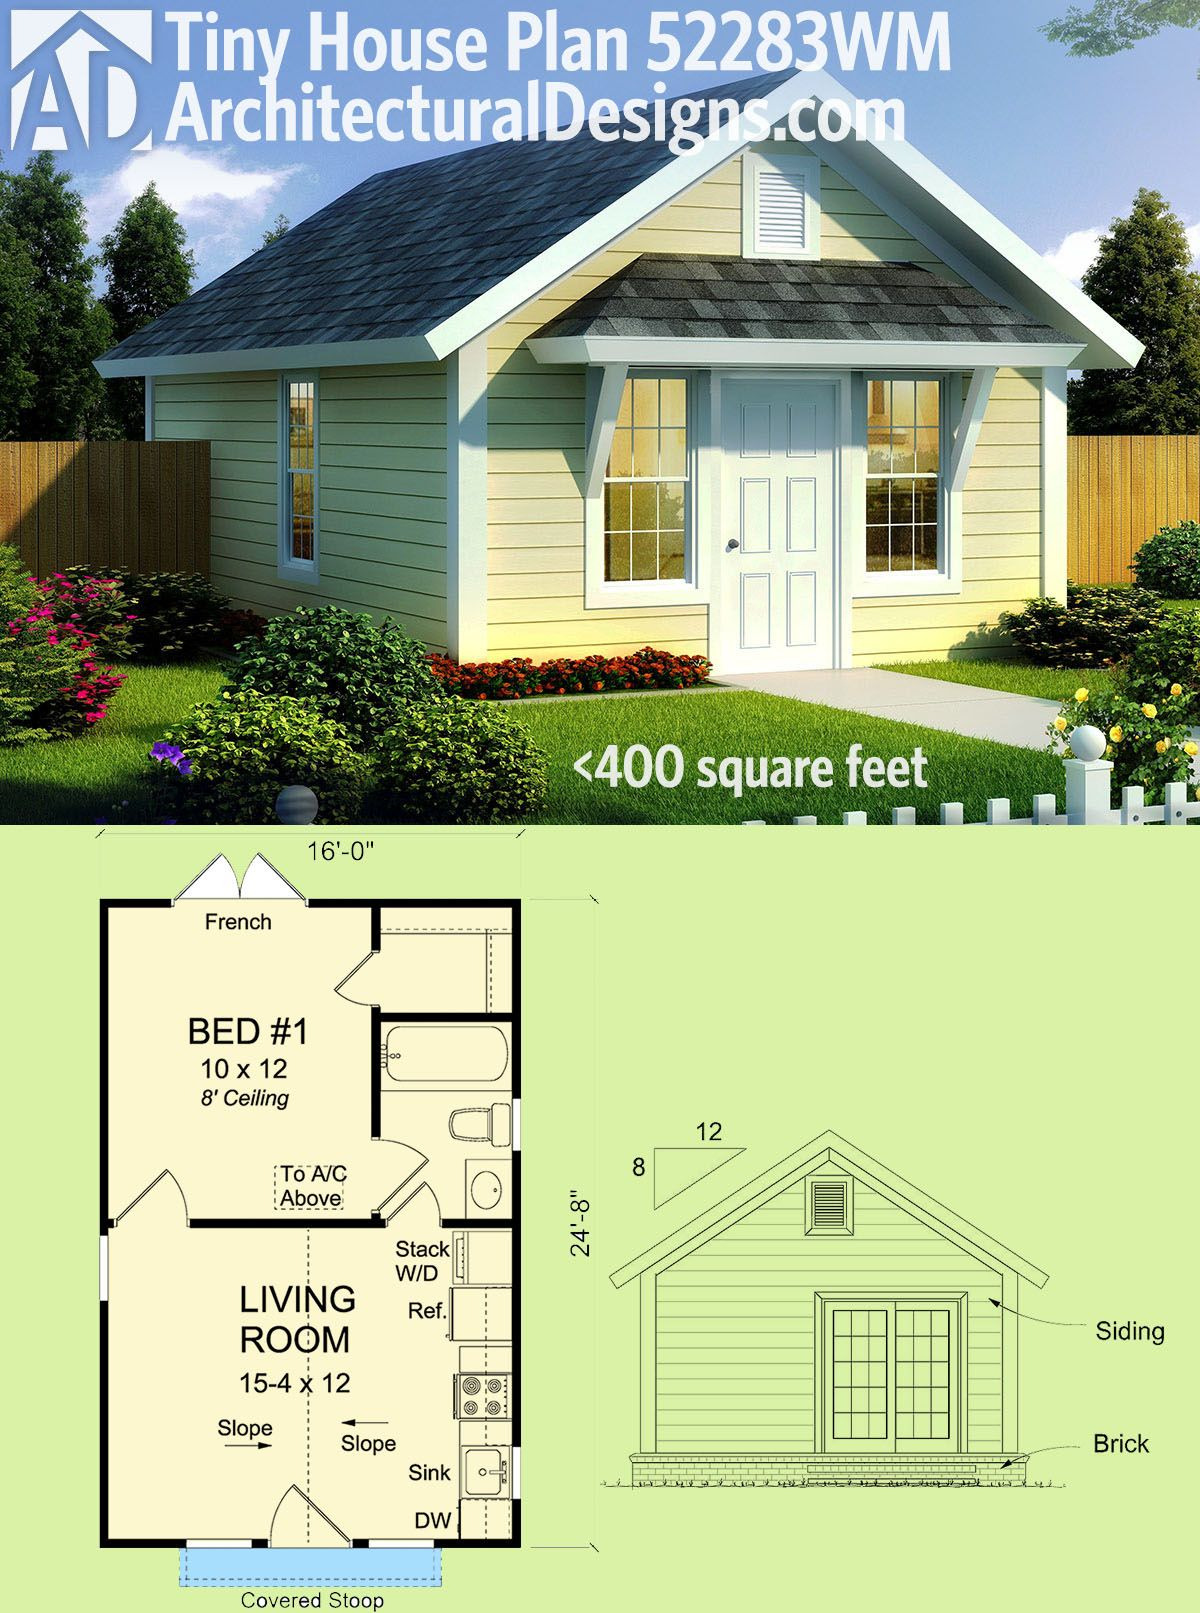 Small Compact House Plans Lovely Plan Wm Pact Tiny Cottage